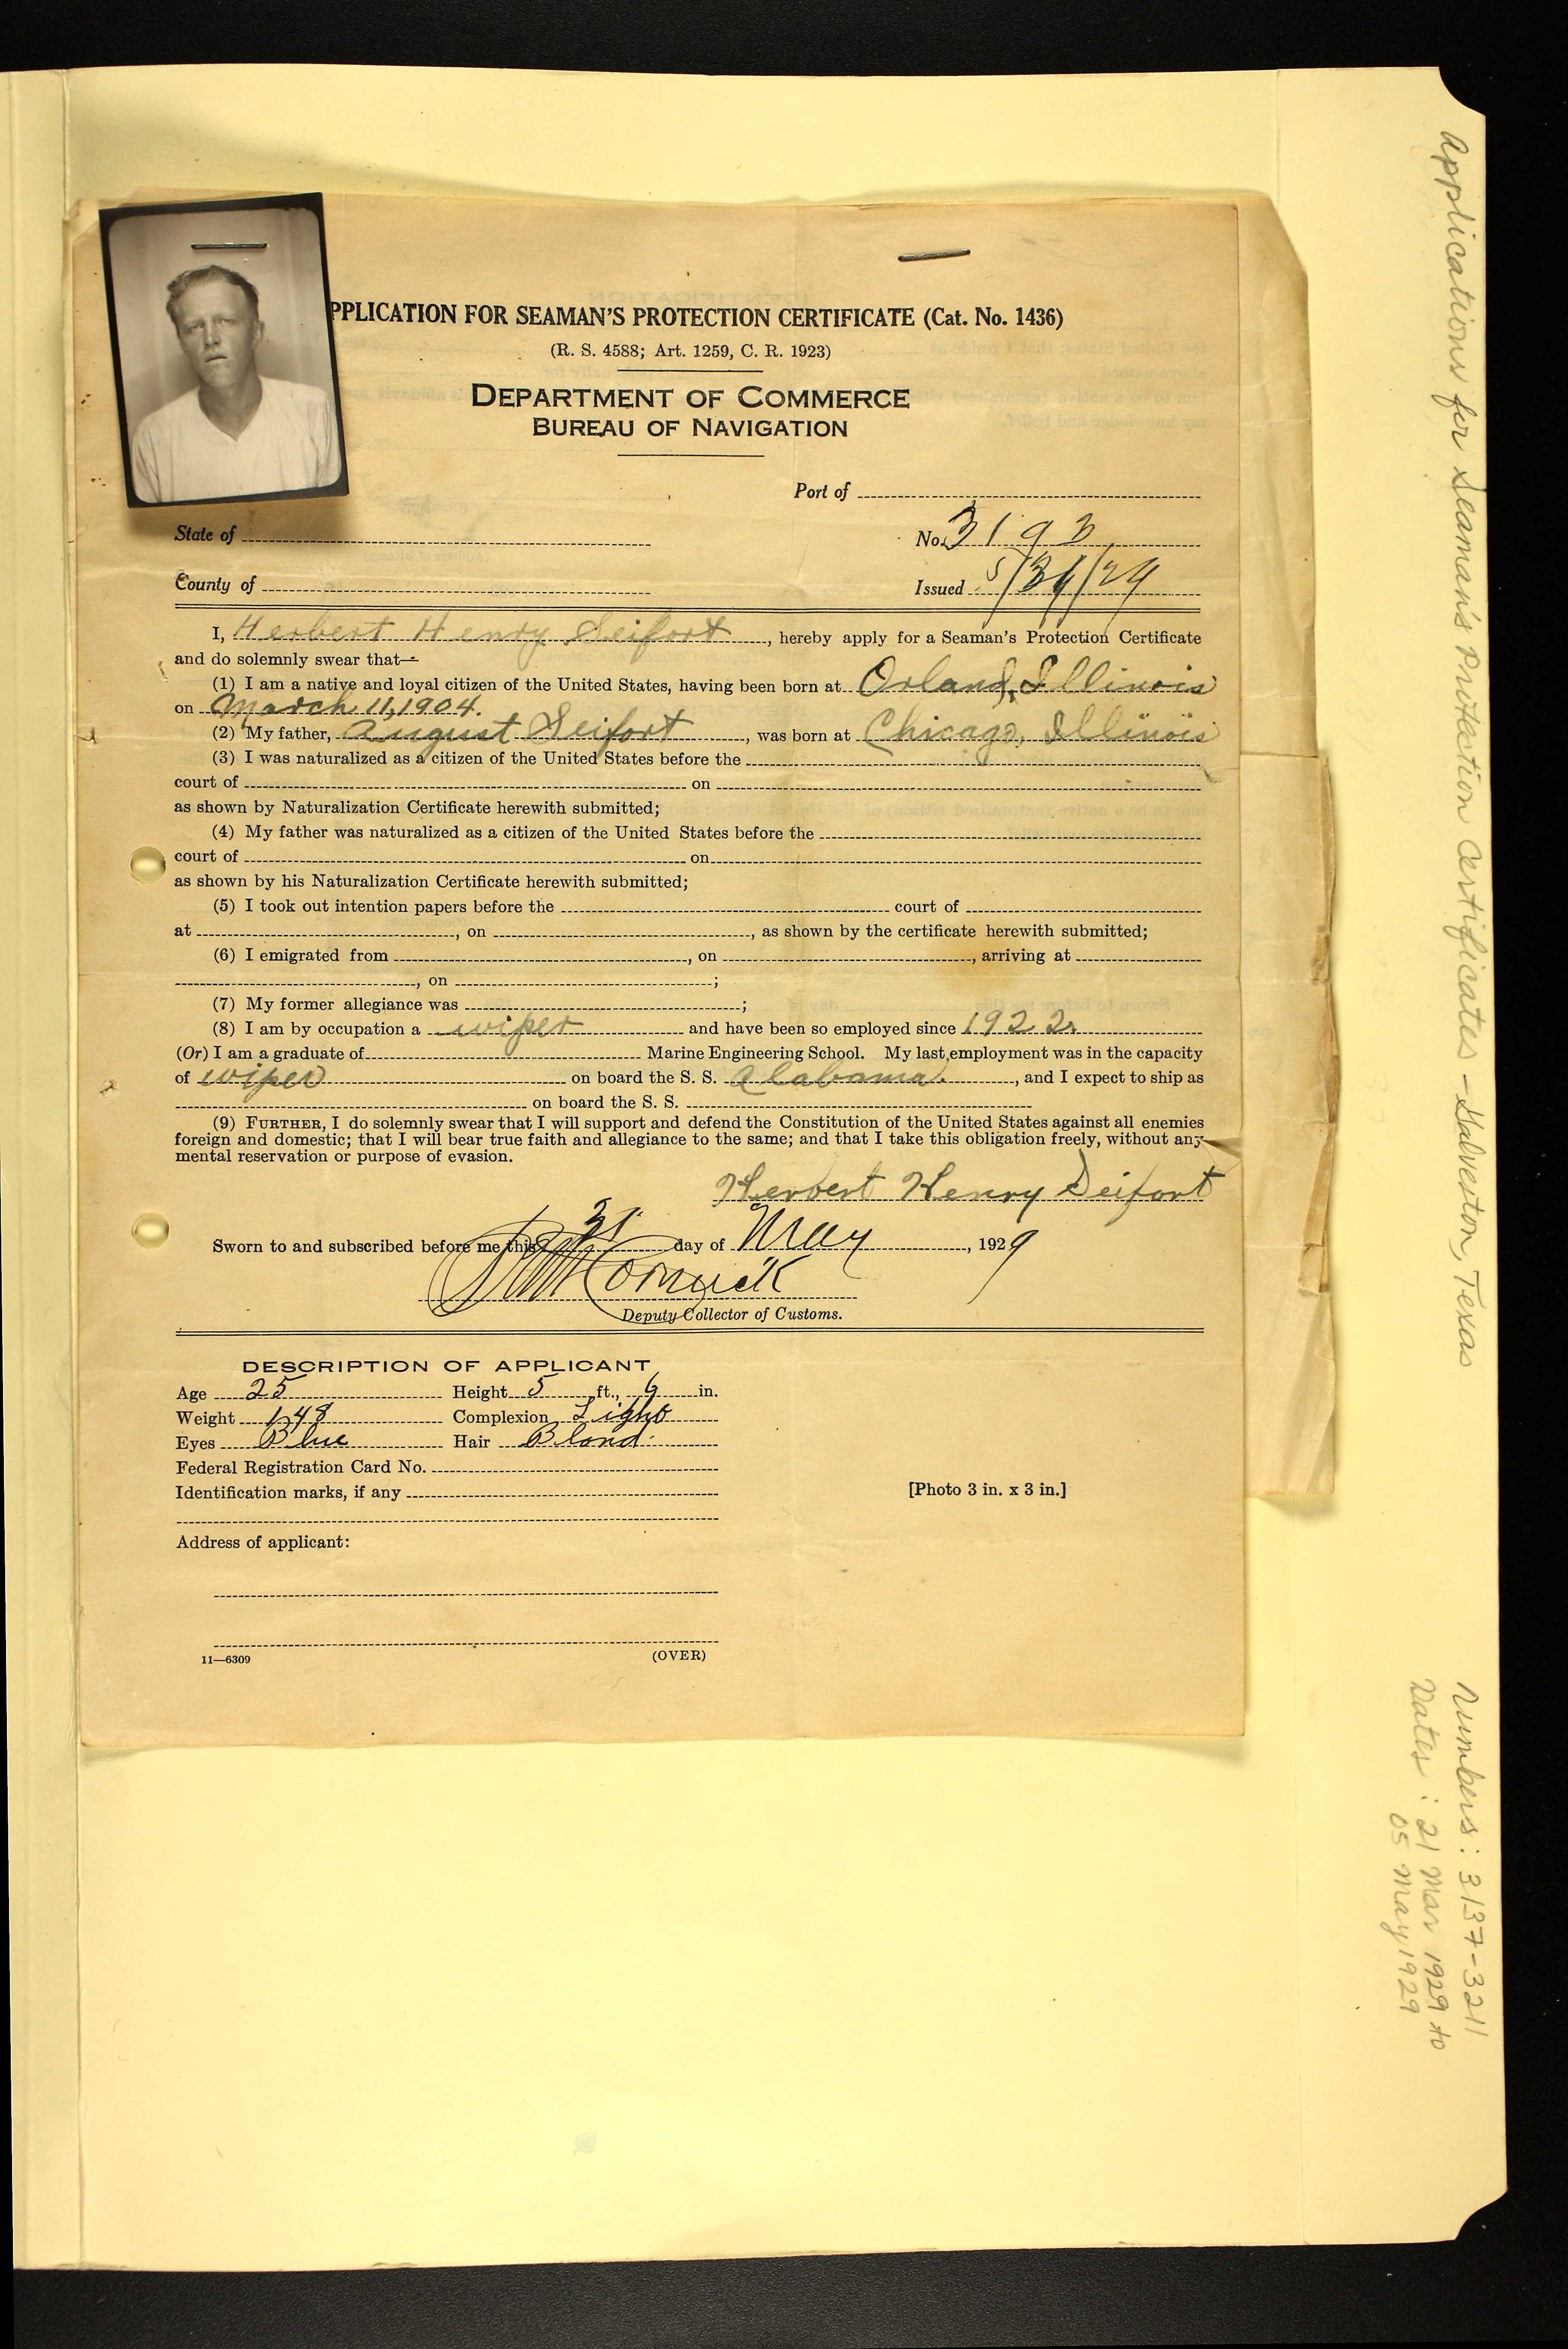 Herbert henry seifert 1904 1948 find a grave memorial herberts application for seamans protection certificate dated 31 may 1929 naming his father august seifort born in chicago illinois aiddatafo Choice Image